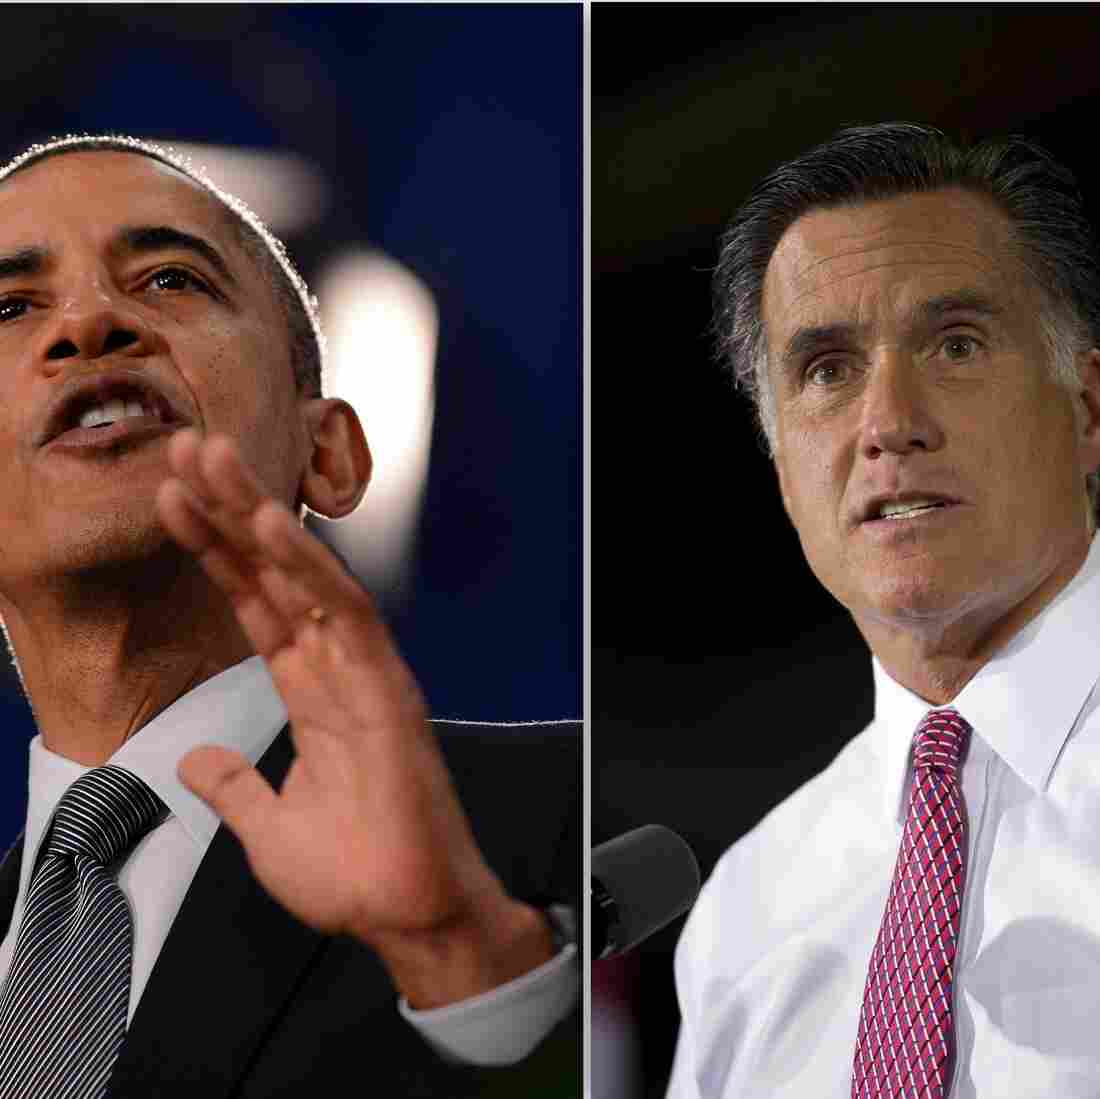 Latest Jobs Data Maintain Status Quo Of Obama-Romney Race